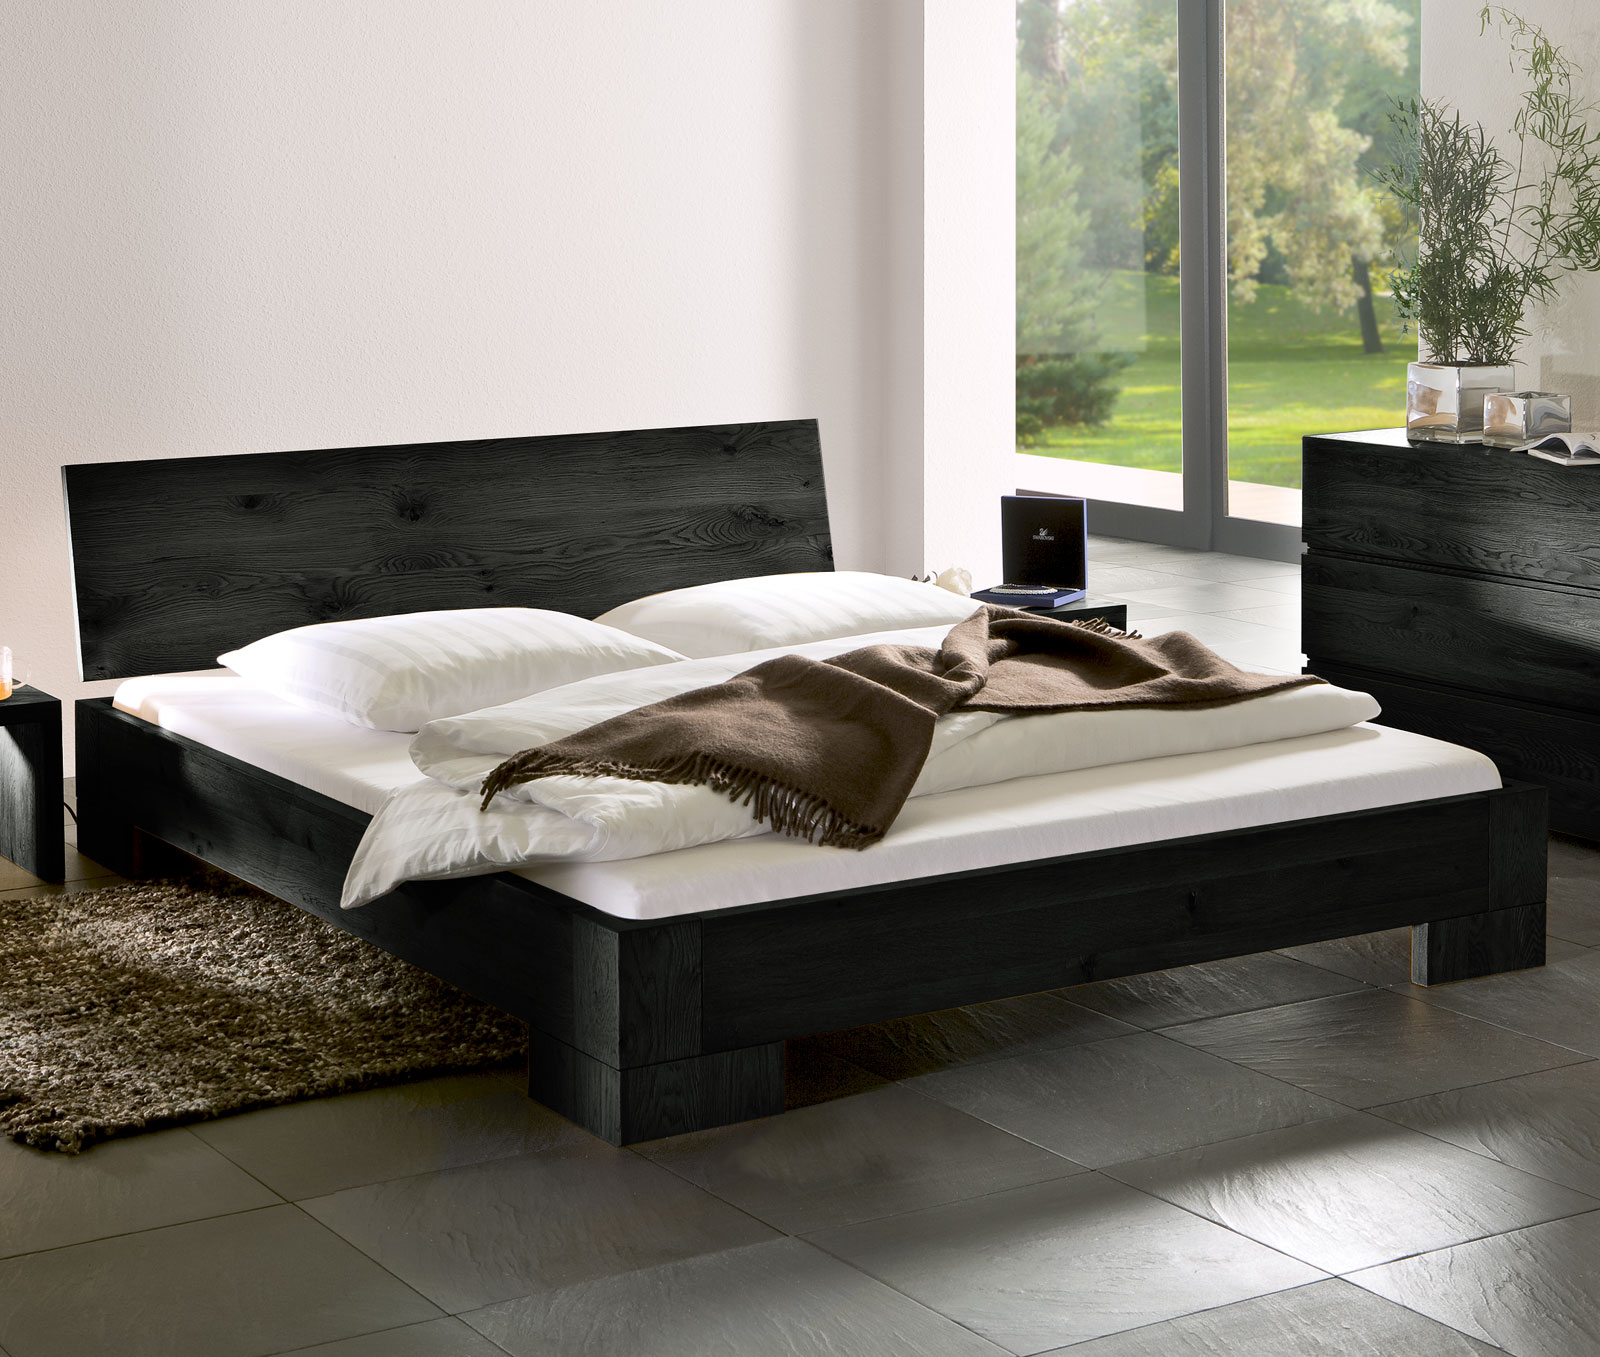 stabiles eichenbett aus salvador in 200x200cm. Black Bedroom Furniture Sets. Home Design Ideas